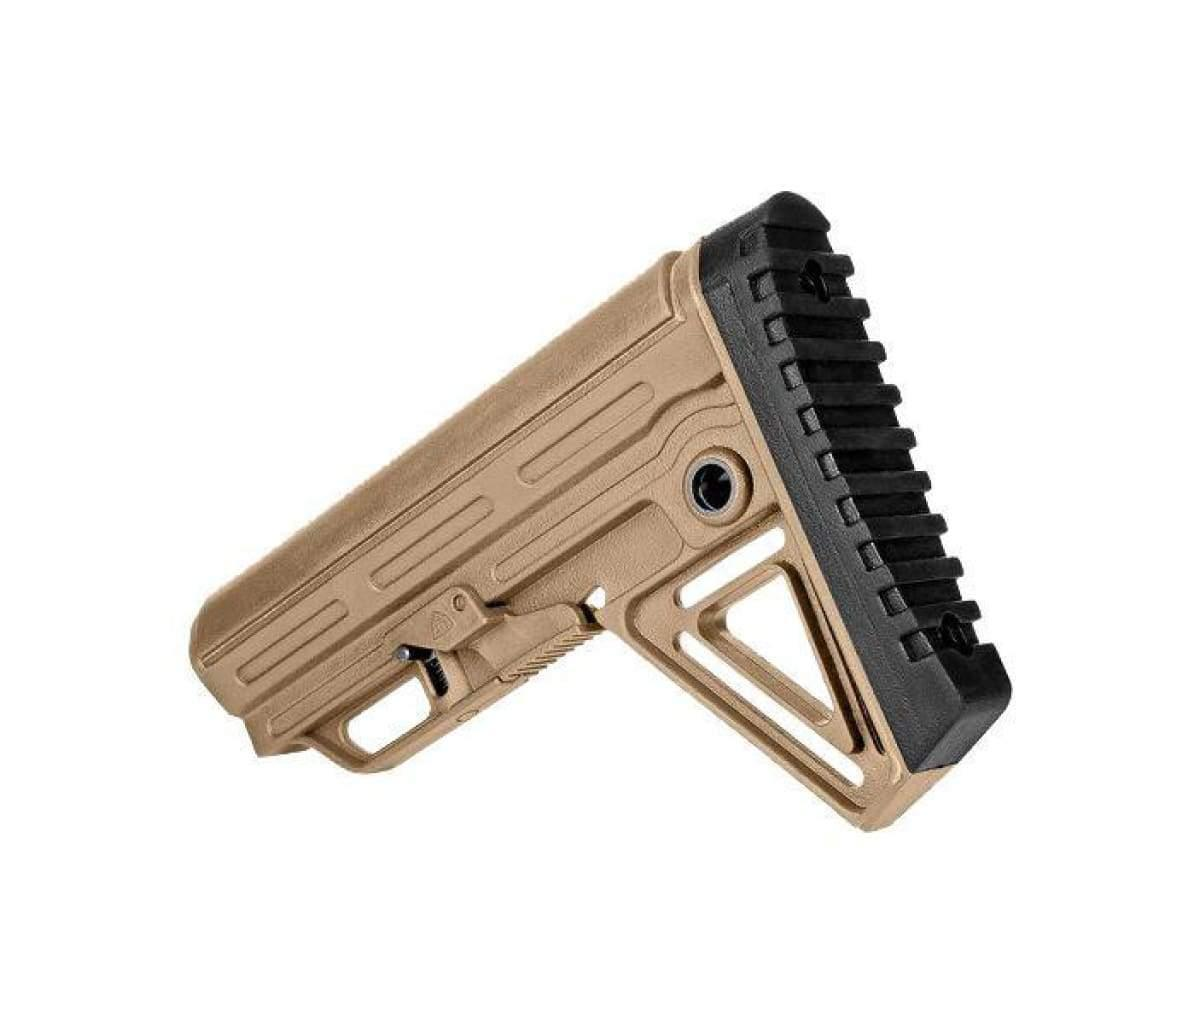 6 position mil spec stock with grip Tan ALPHA stock WITH GRIP sand